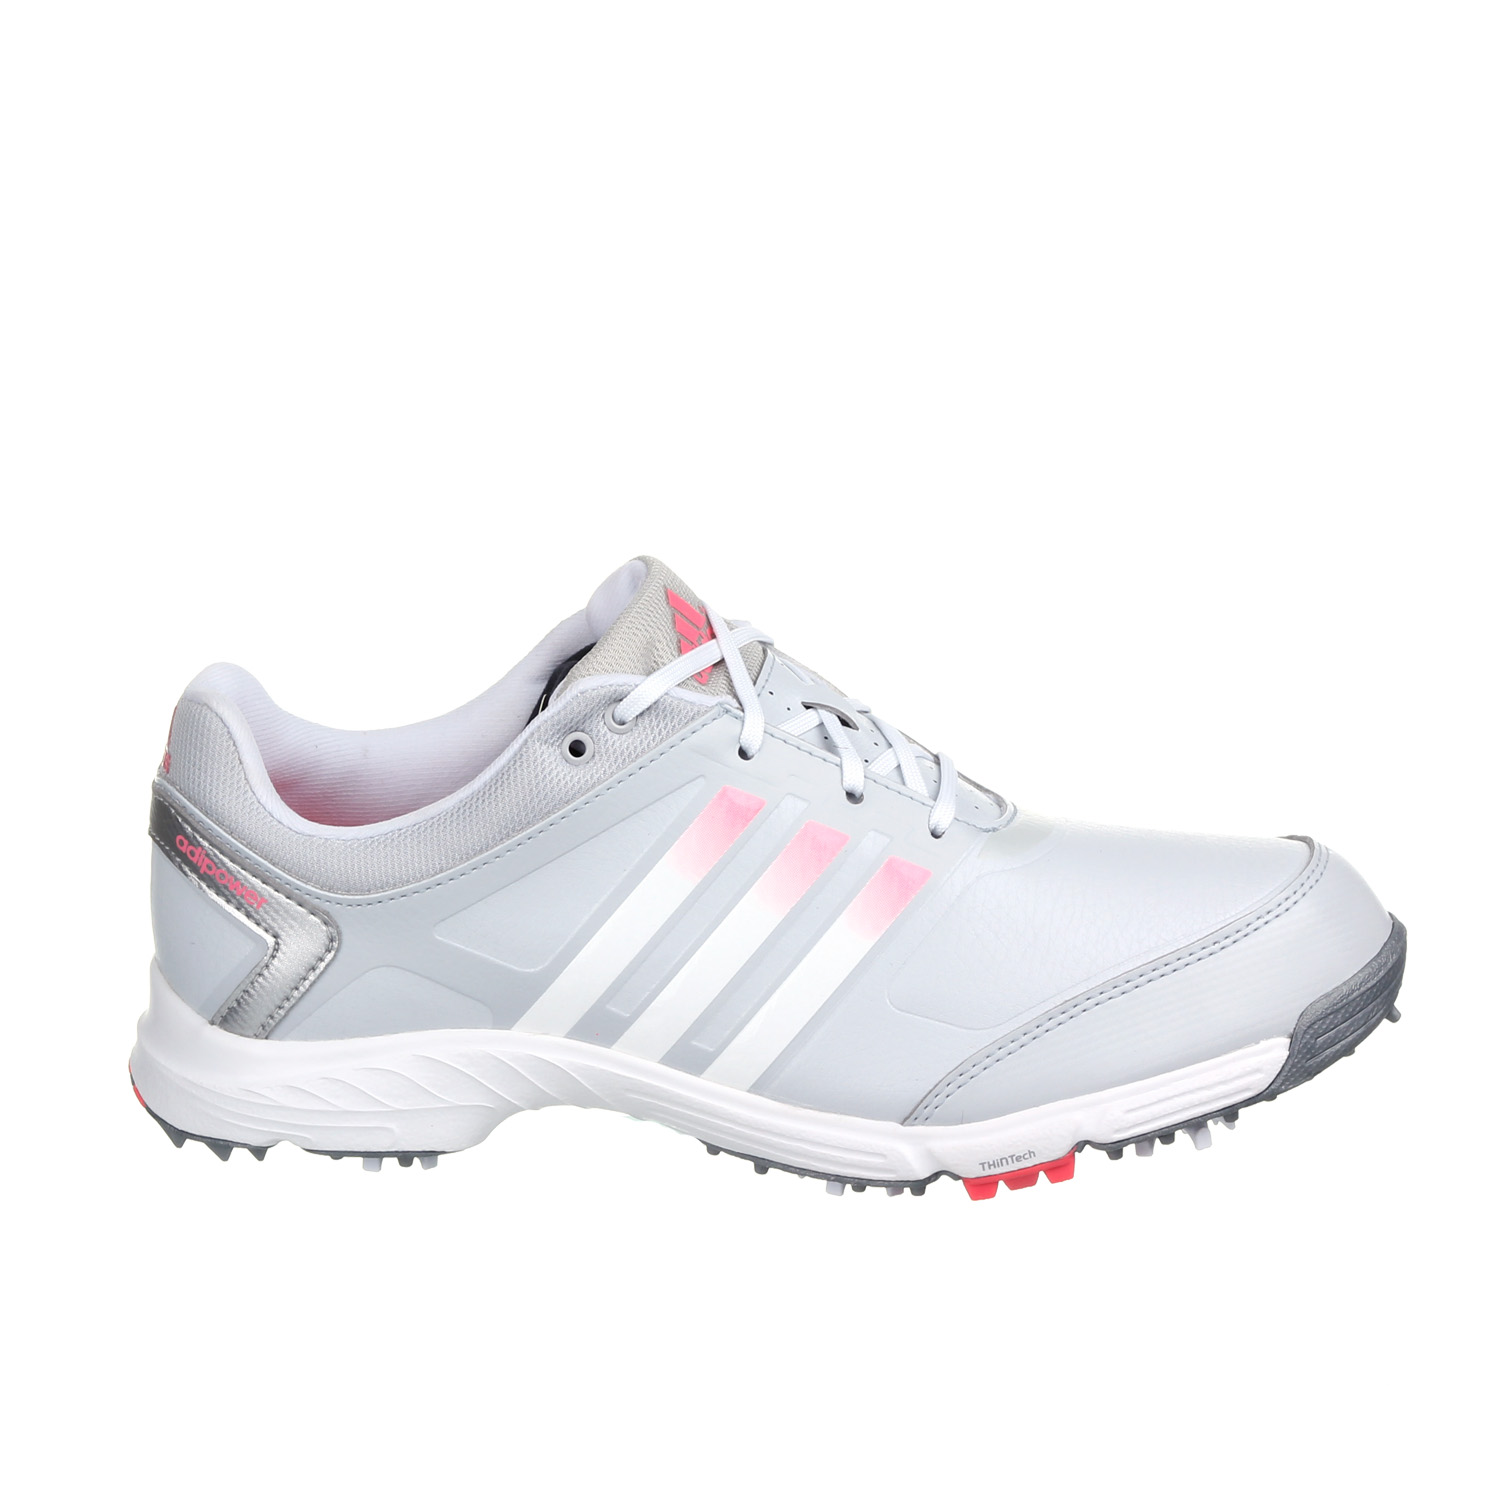 Golf Shoe Warehouse